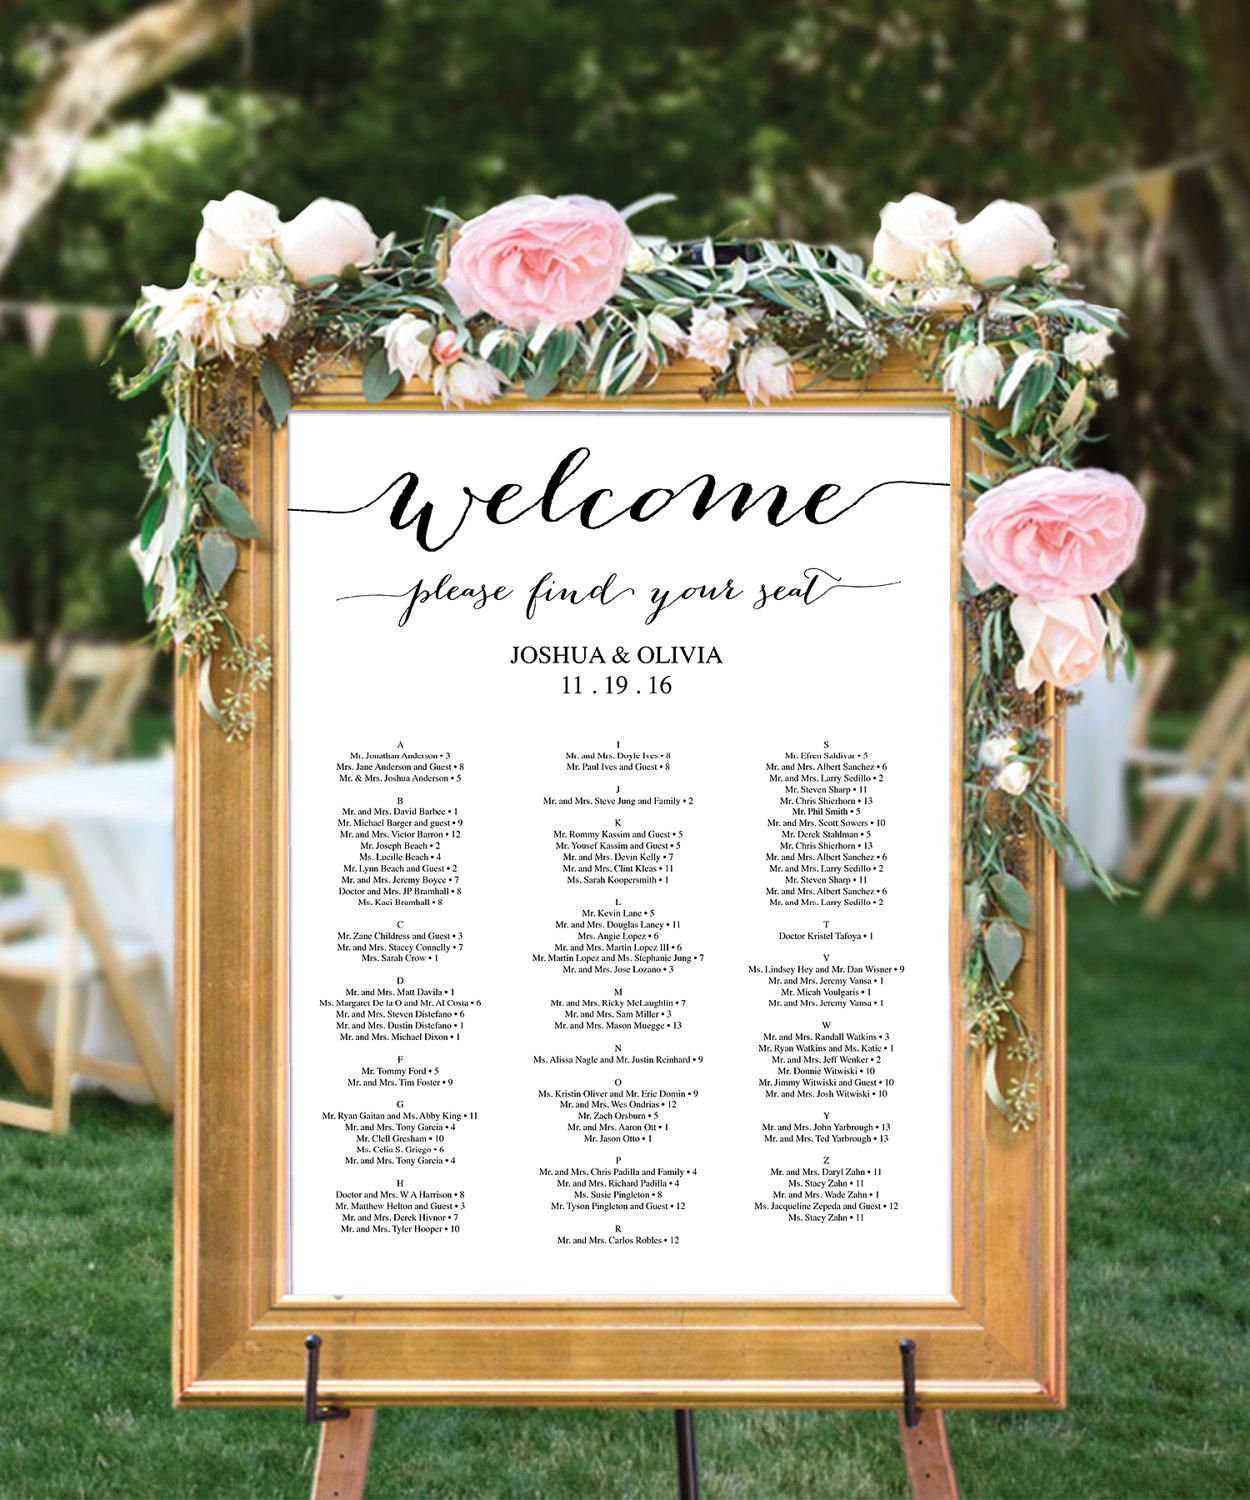 Wedding seating chart editable pdf table arrangement sign also diy rh pinterest